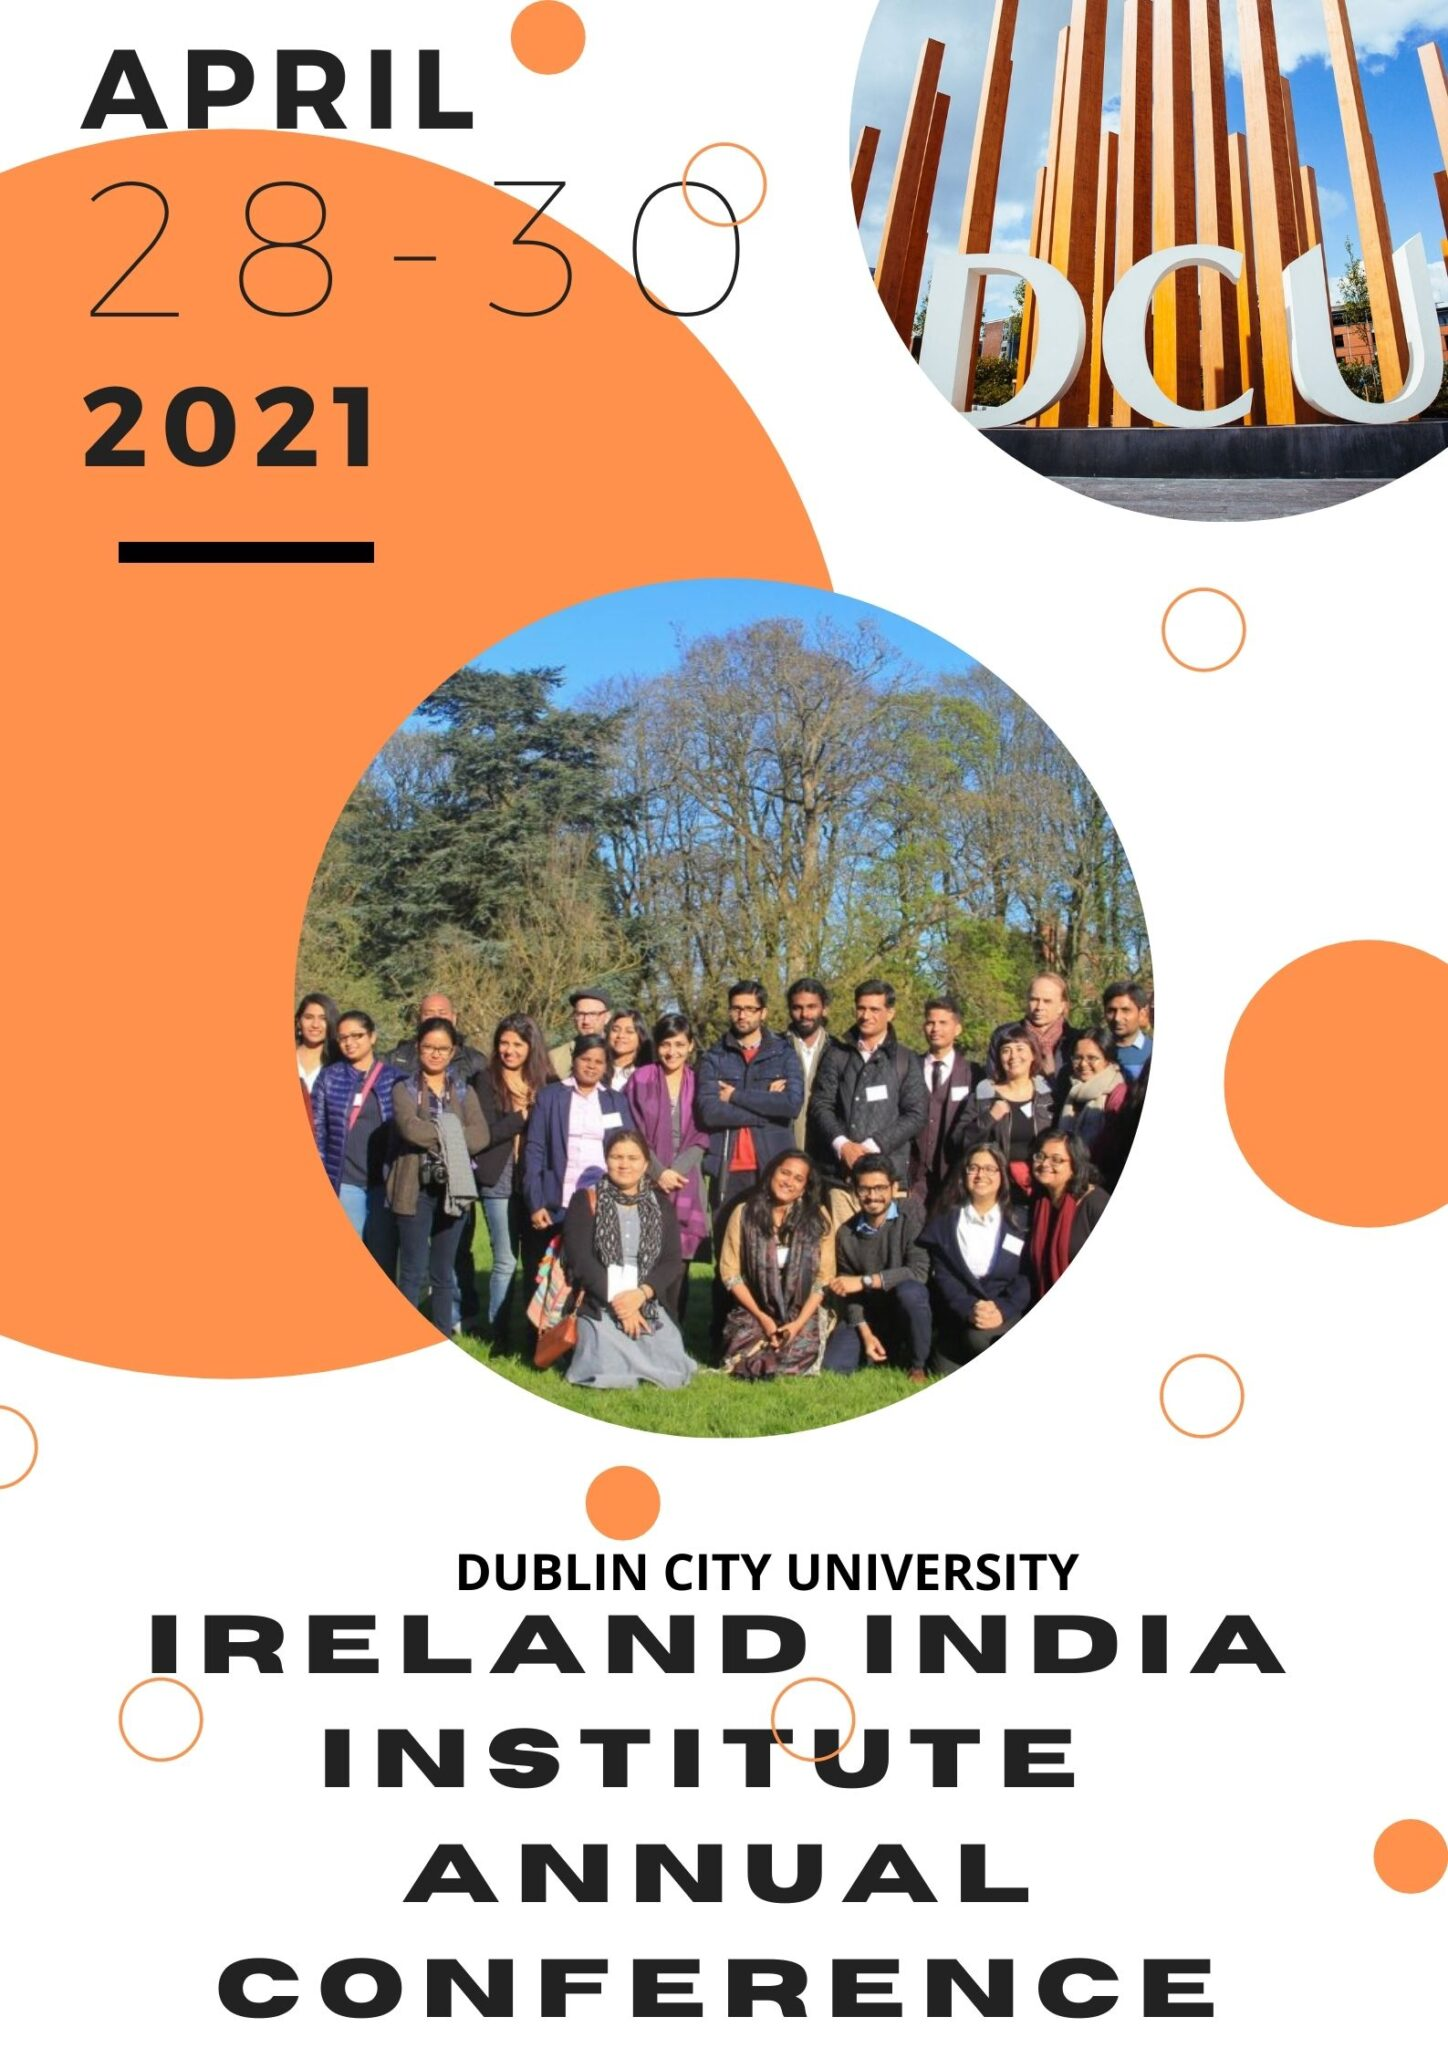 Poster for Conference 28-30 April 2021